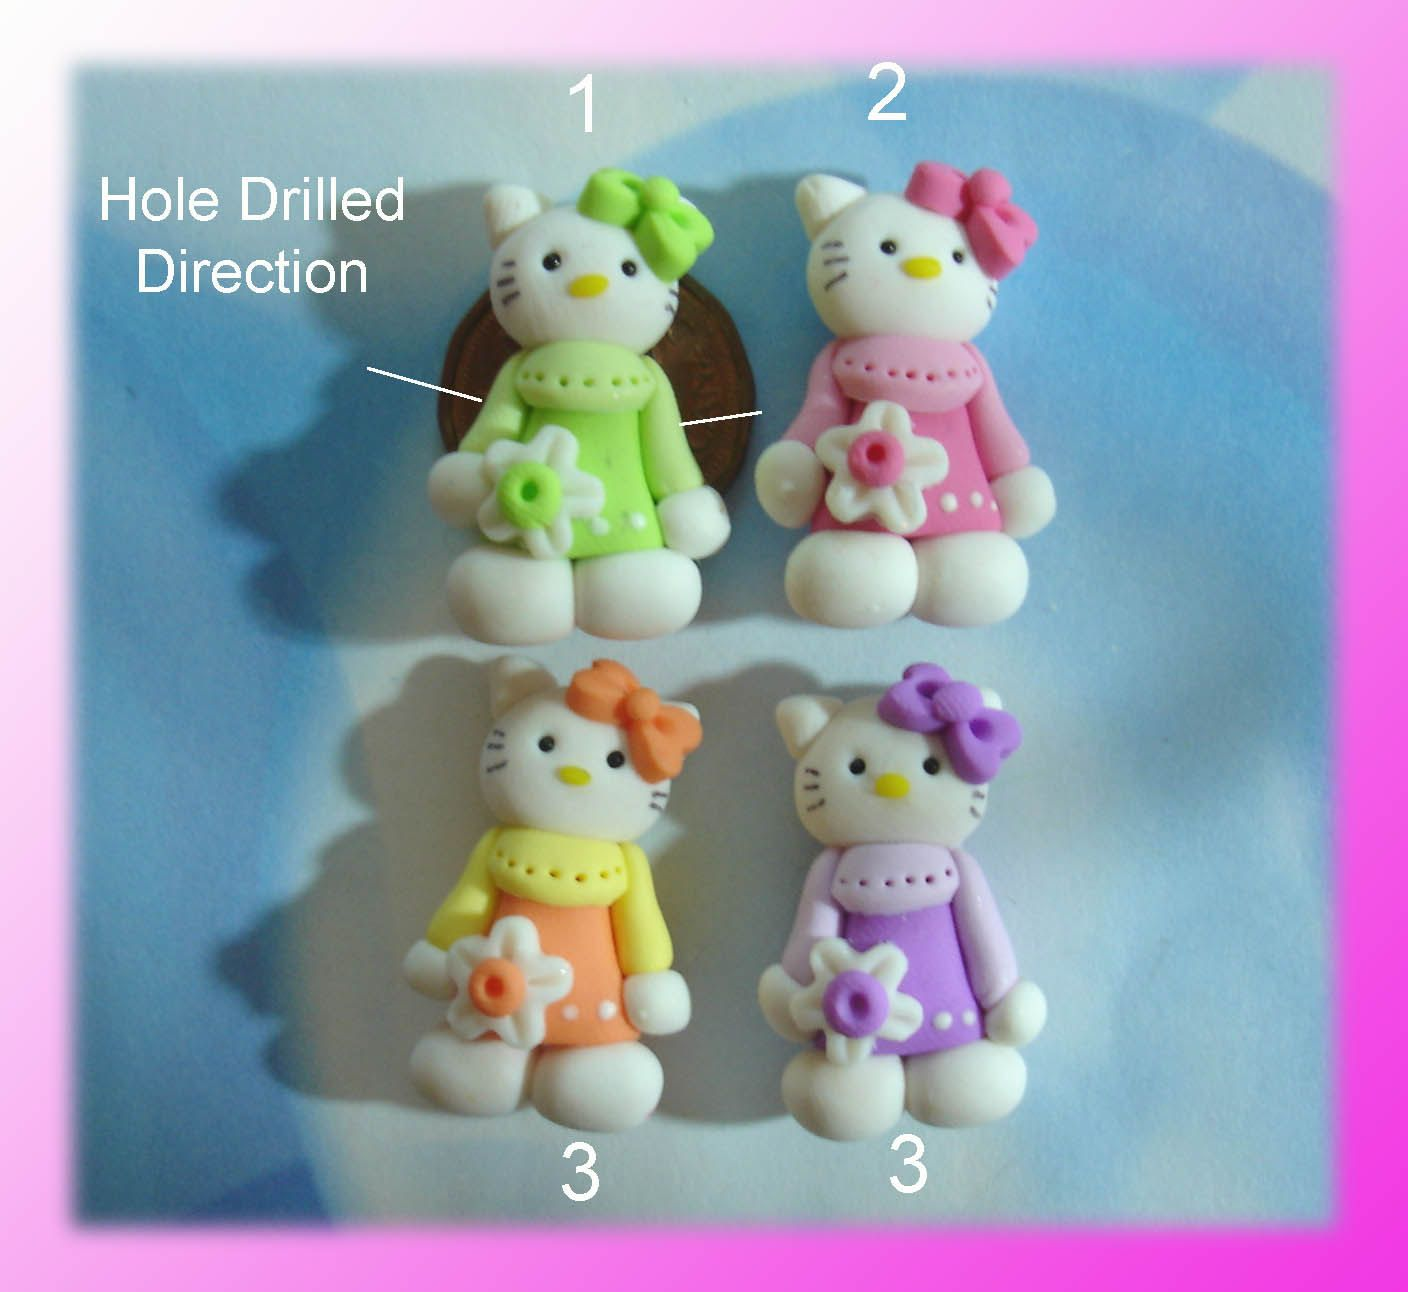 SALE Dress up Kitty Flower Polymer Clay Charm Bead Scrapbooking Embelishment Bow Center Pendant Cupcake Topper. $1.50, via Etsy.